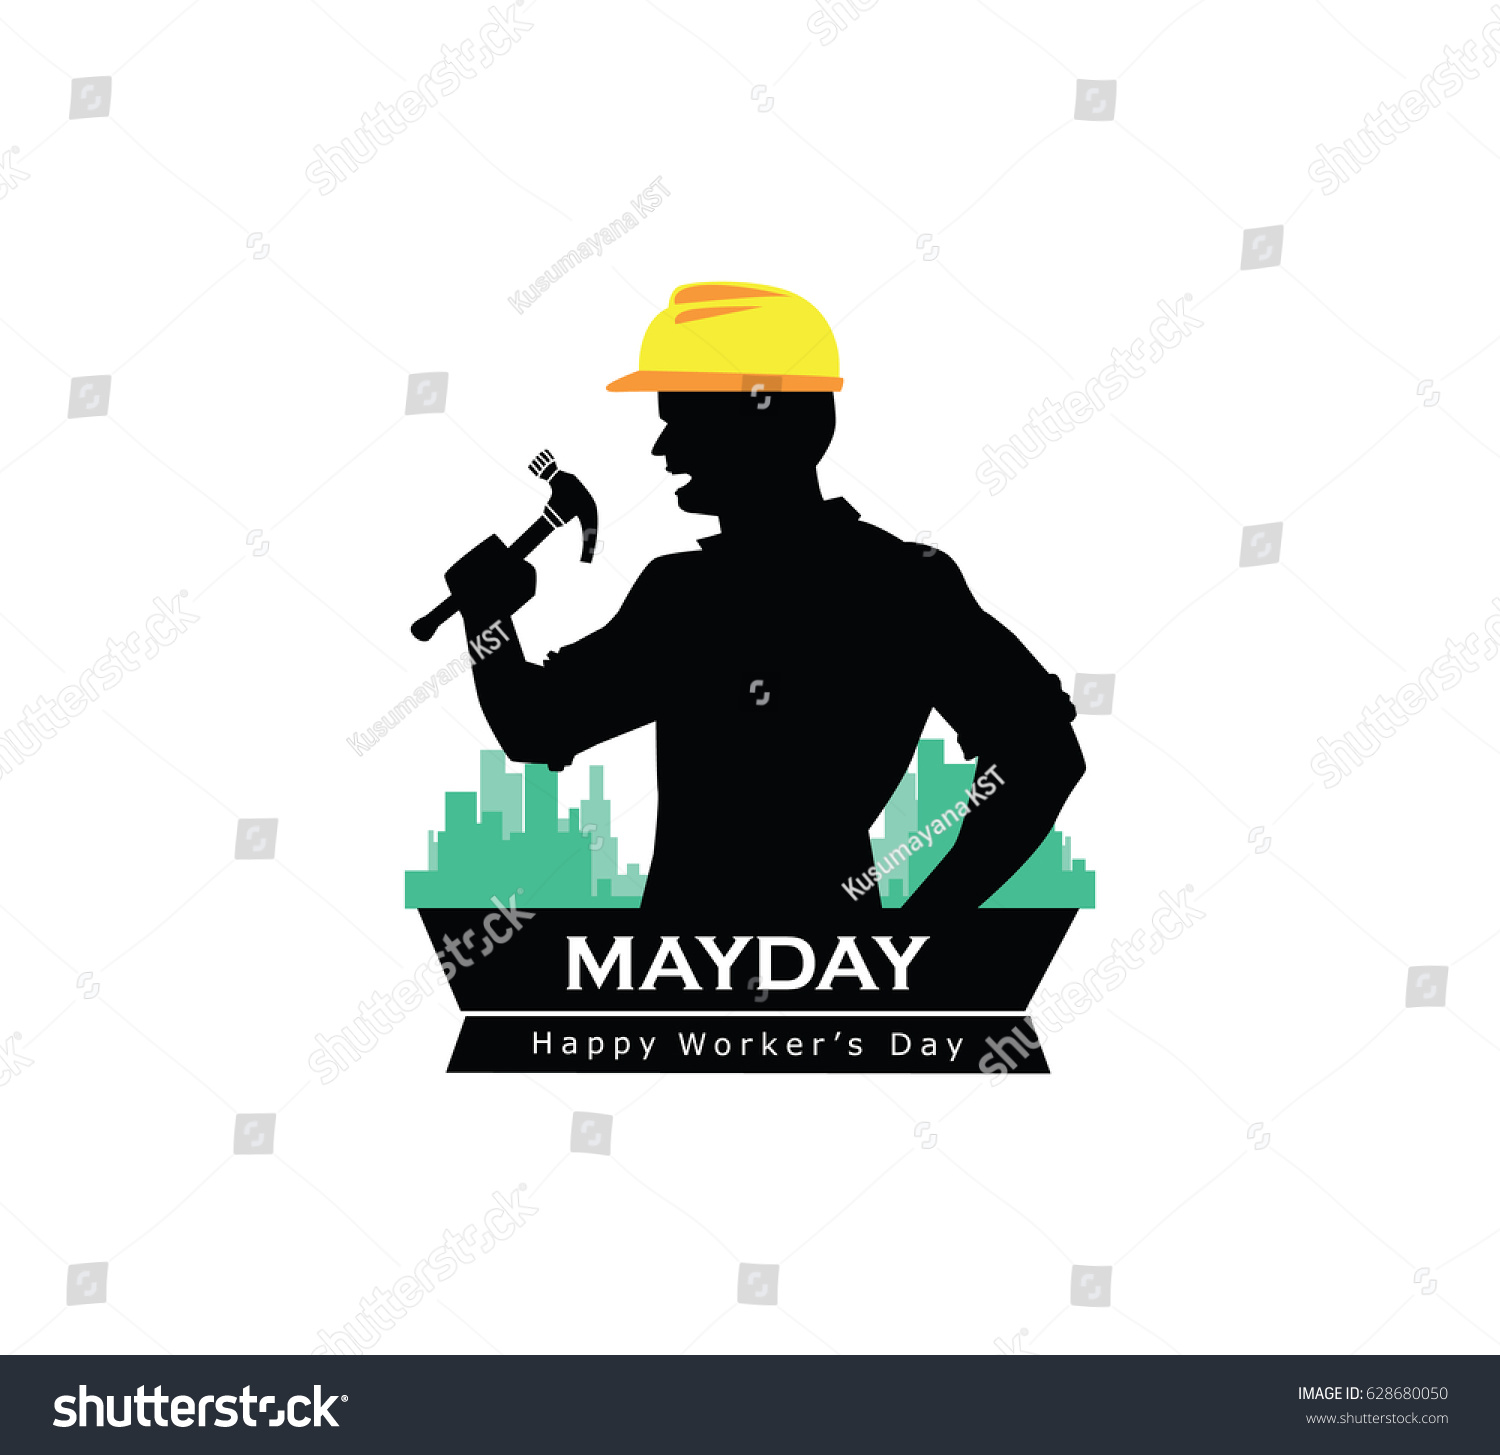 Mayday labor day happy worker day stock vector 628680050 shutterstock mayday labor day happy worker day illustration grapich design icon buycottarizona Choice Image